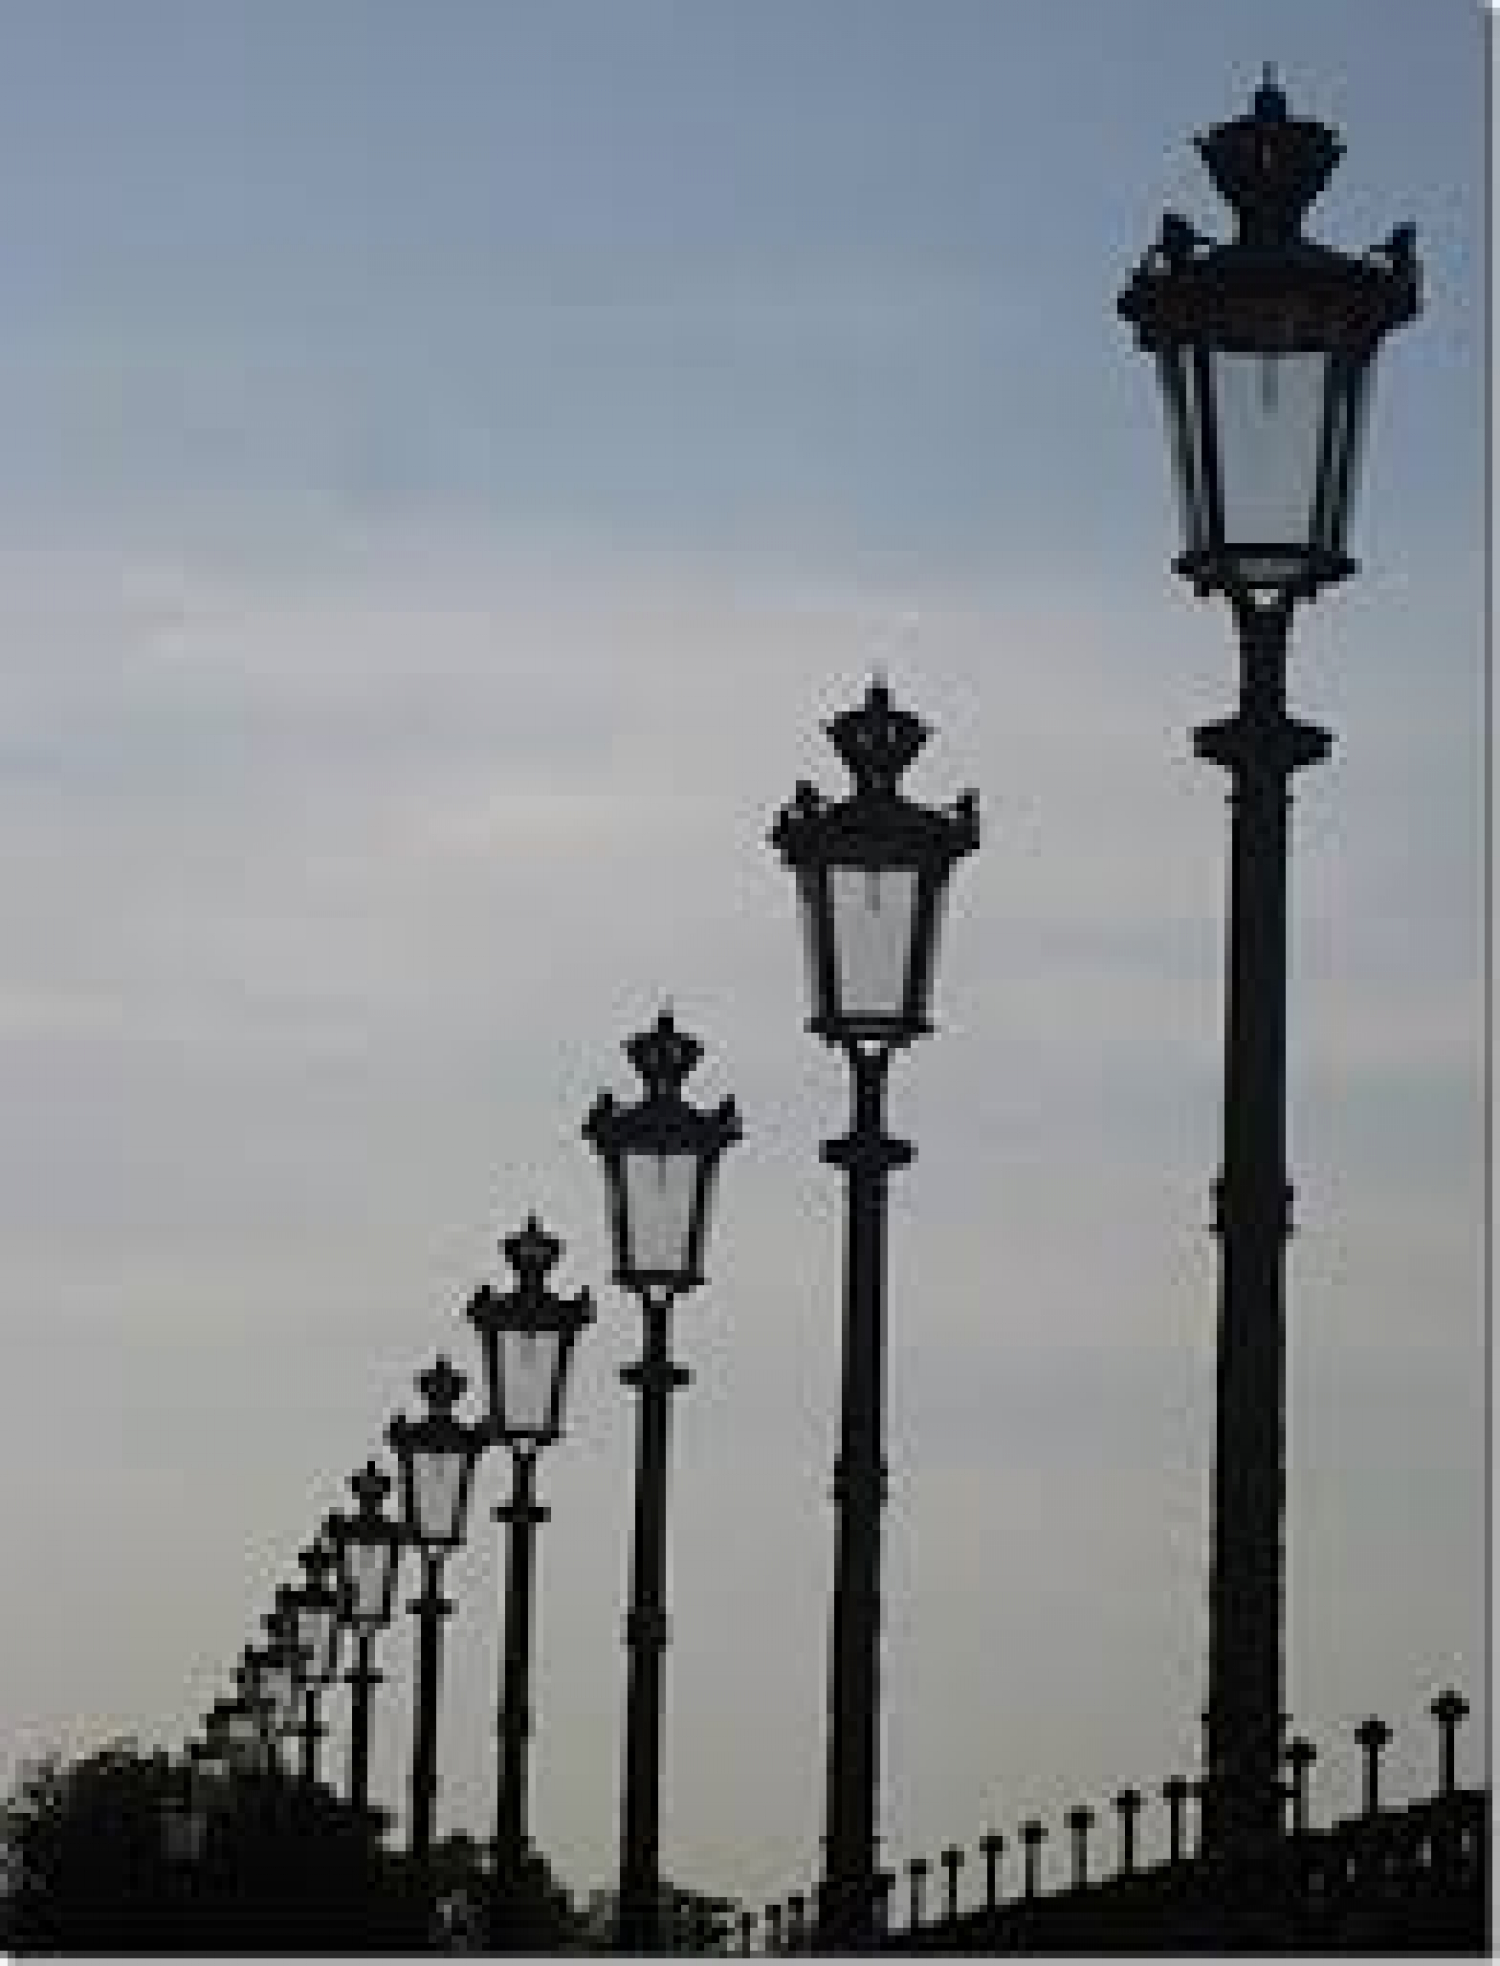 Antique street lighting - childhood memories - image 6 & Antique street lighting - childhood memories - Norfolk Decorative ... azcodes.com